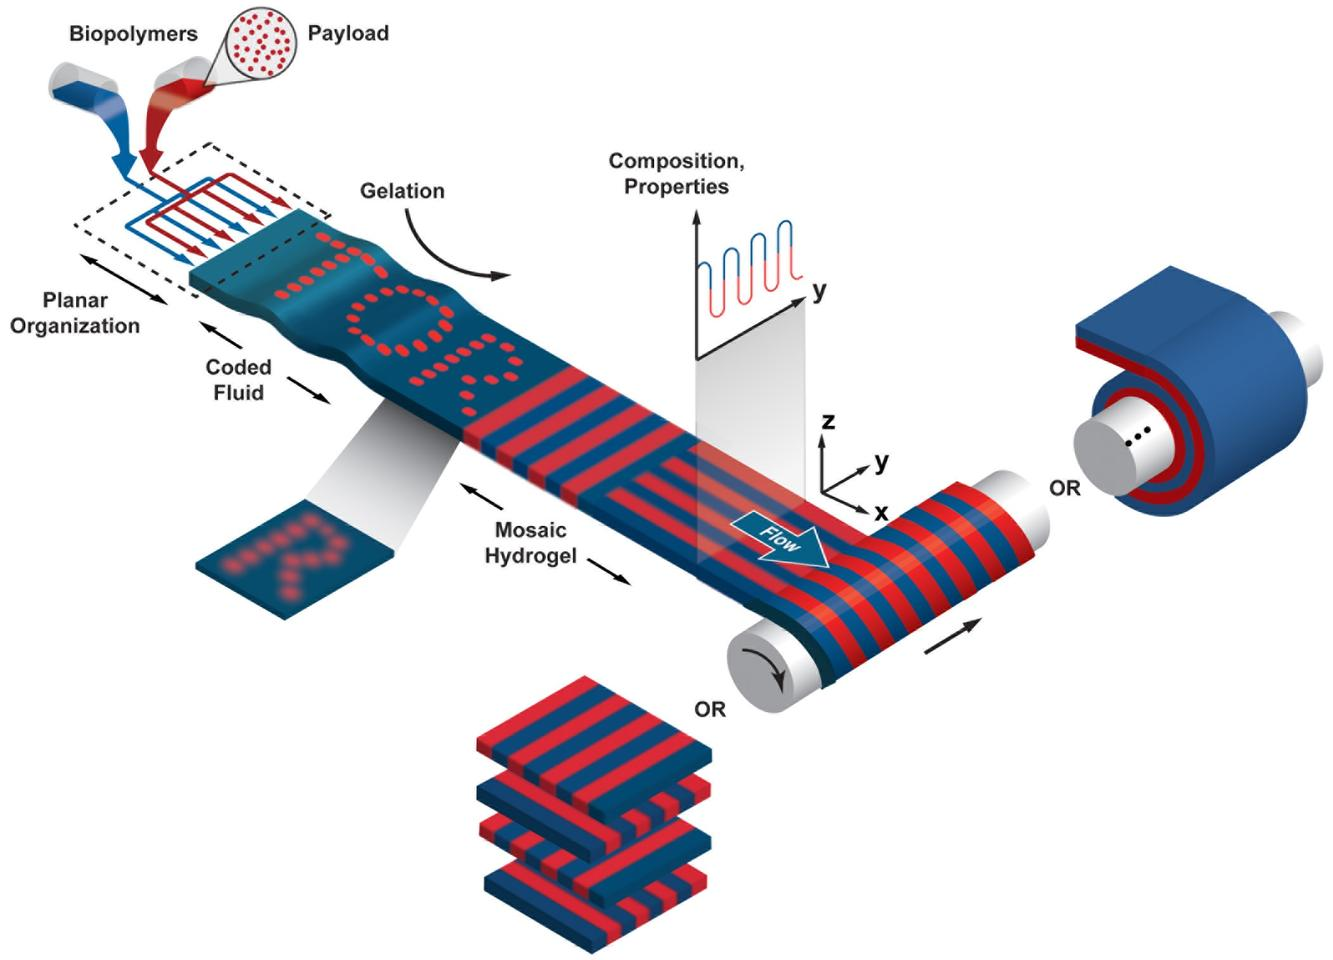 A diagram of the tissue-producing device